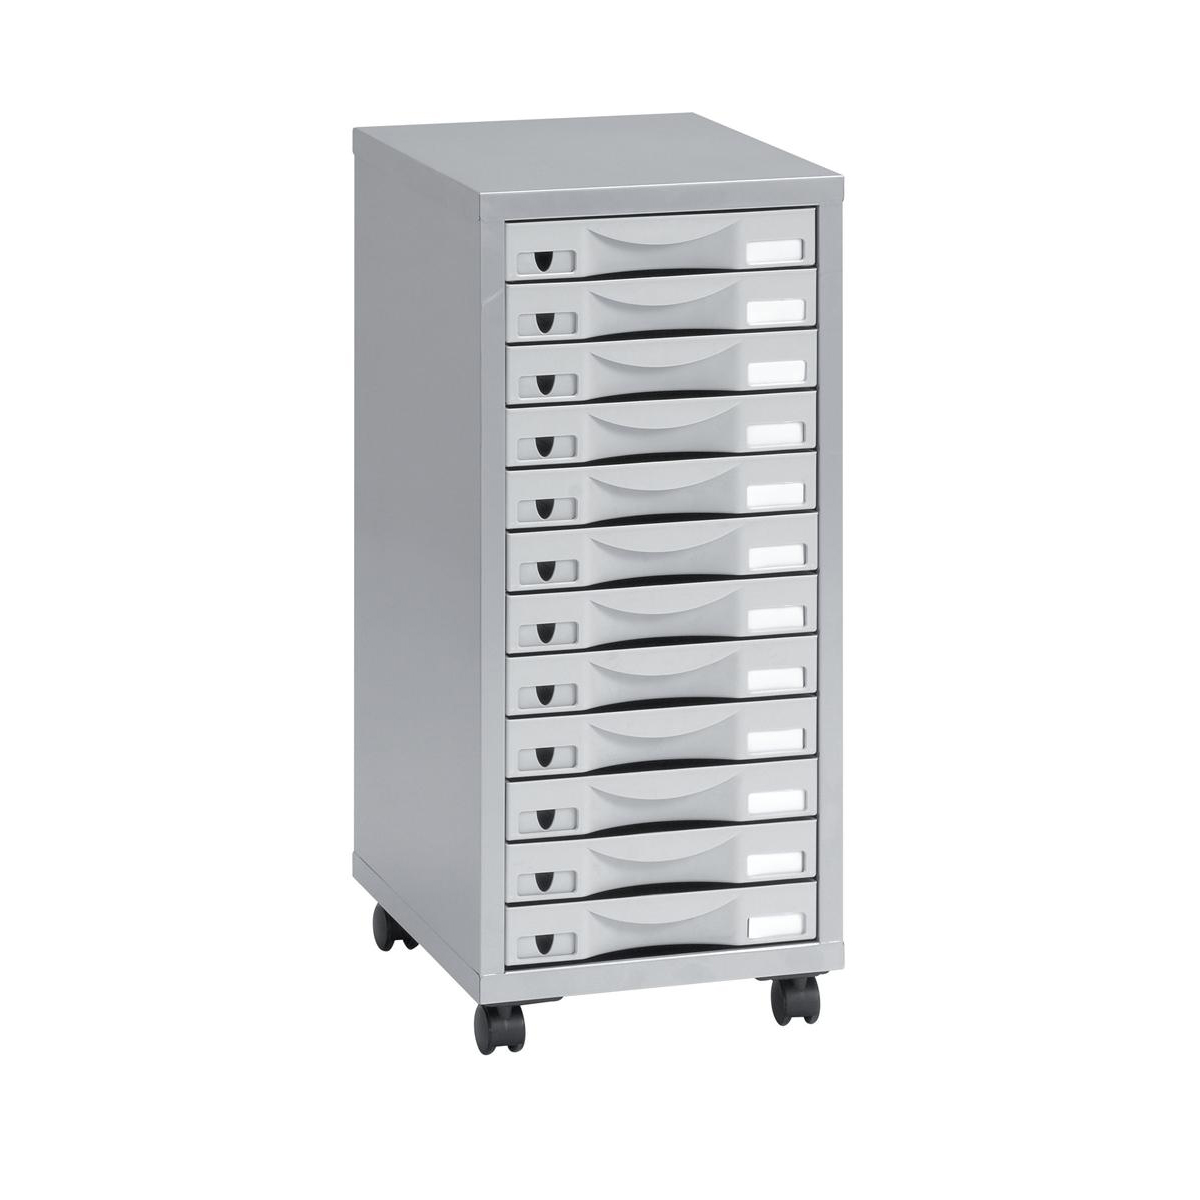 Pierre Henry 12 Drawer Multidrawer 300x390x710mm Silver Grey Ref 95072